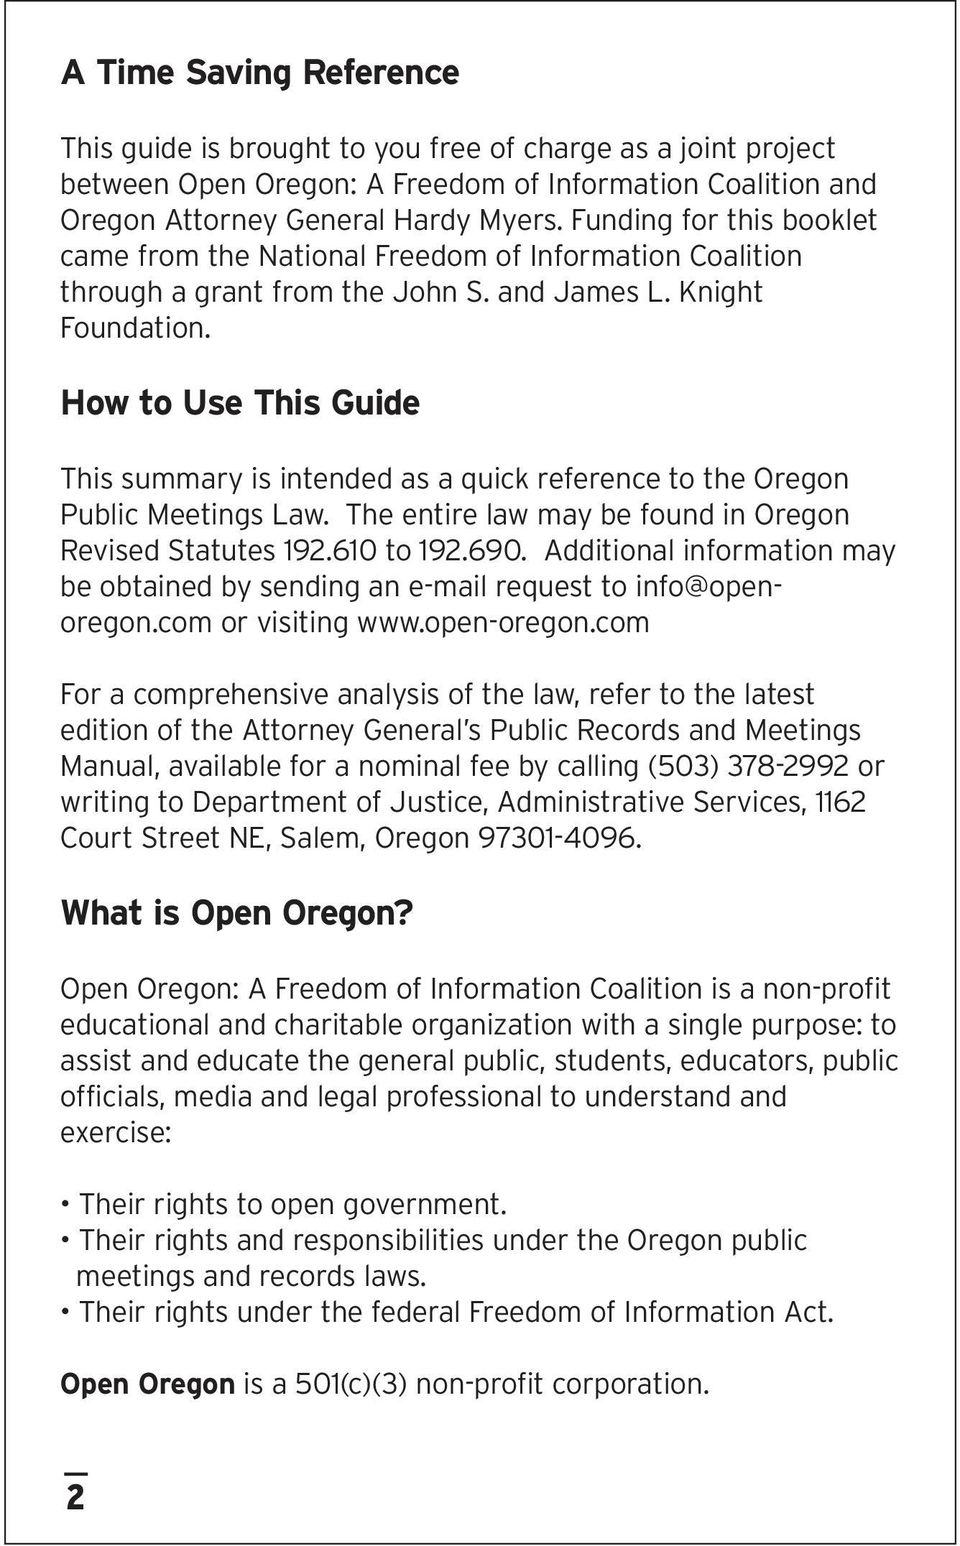 How to Use This Guide This summary is intended as a quick reference to the Oregon Public Meetings Law. The entire law may be found in Oregon Revised Statutes 192.610 to 192.690.